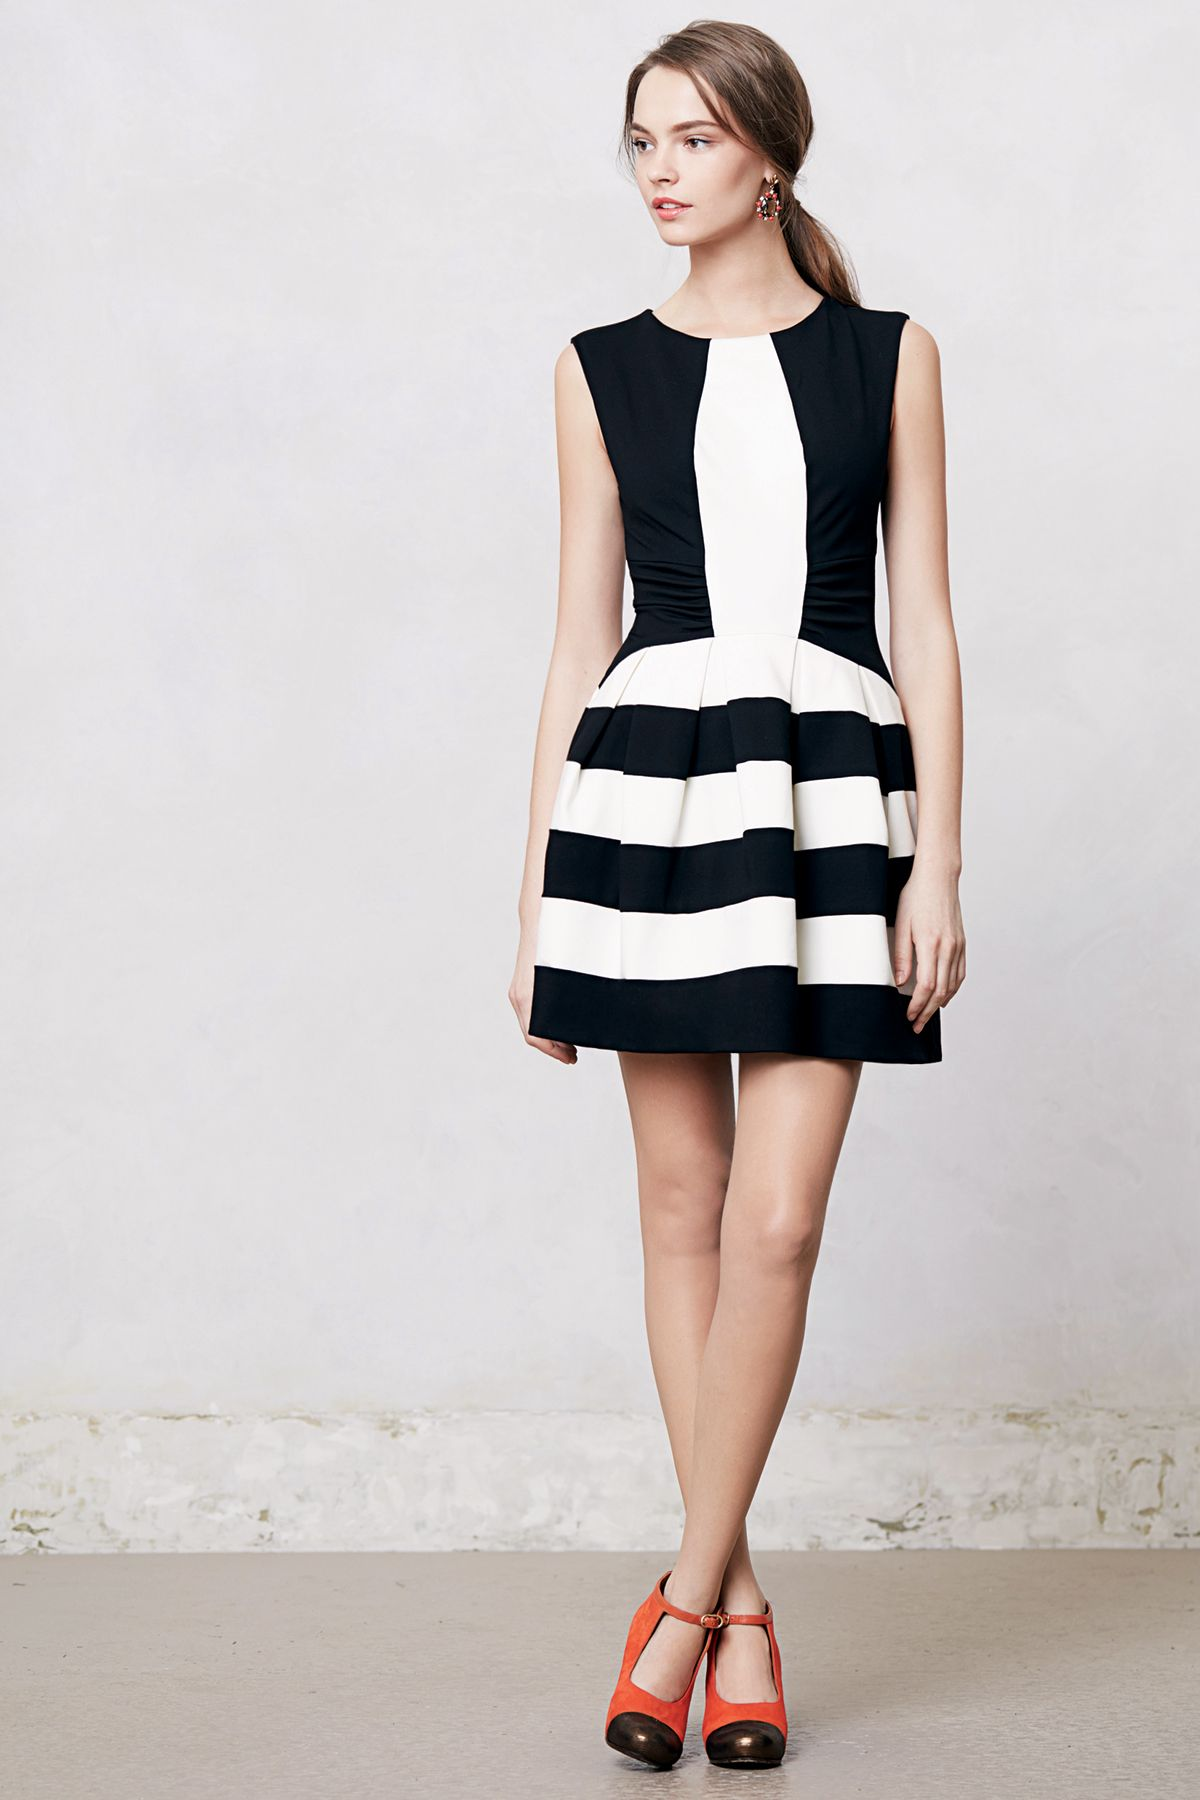 78 Best images about Black and White Dresses on Pinterest  Satin ...